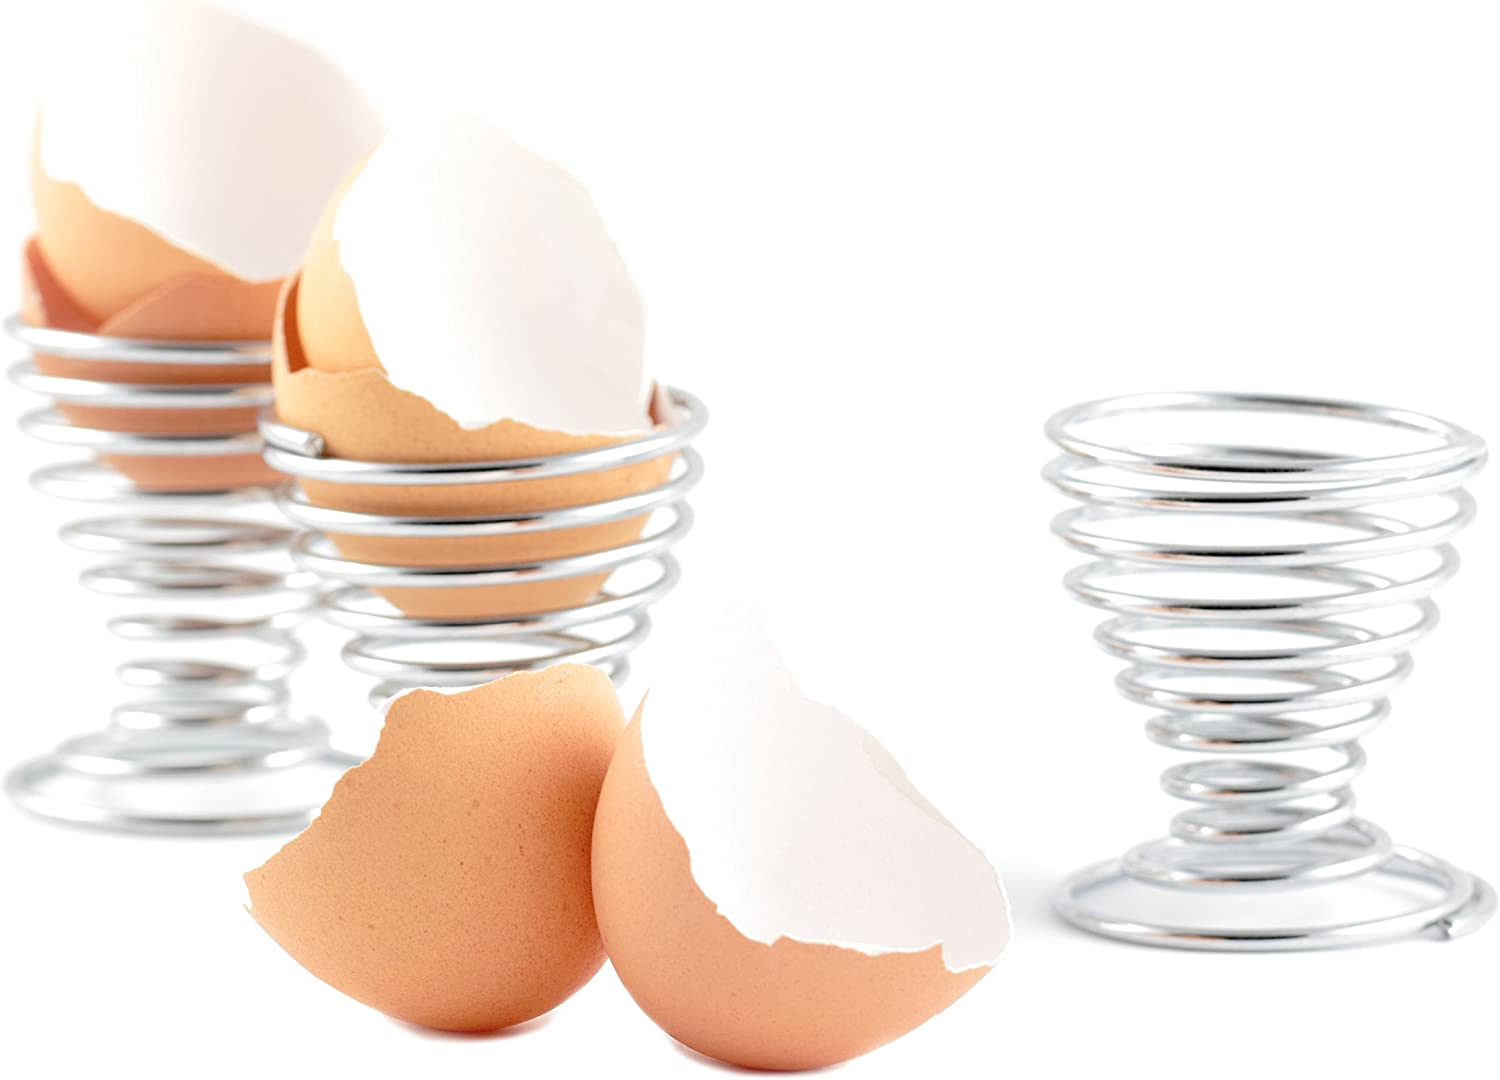 Chrome-Plated Steel Spring Wire Easter Egg Display Holder Serving Cups Set of 6 MyGift